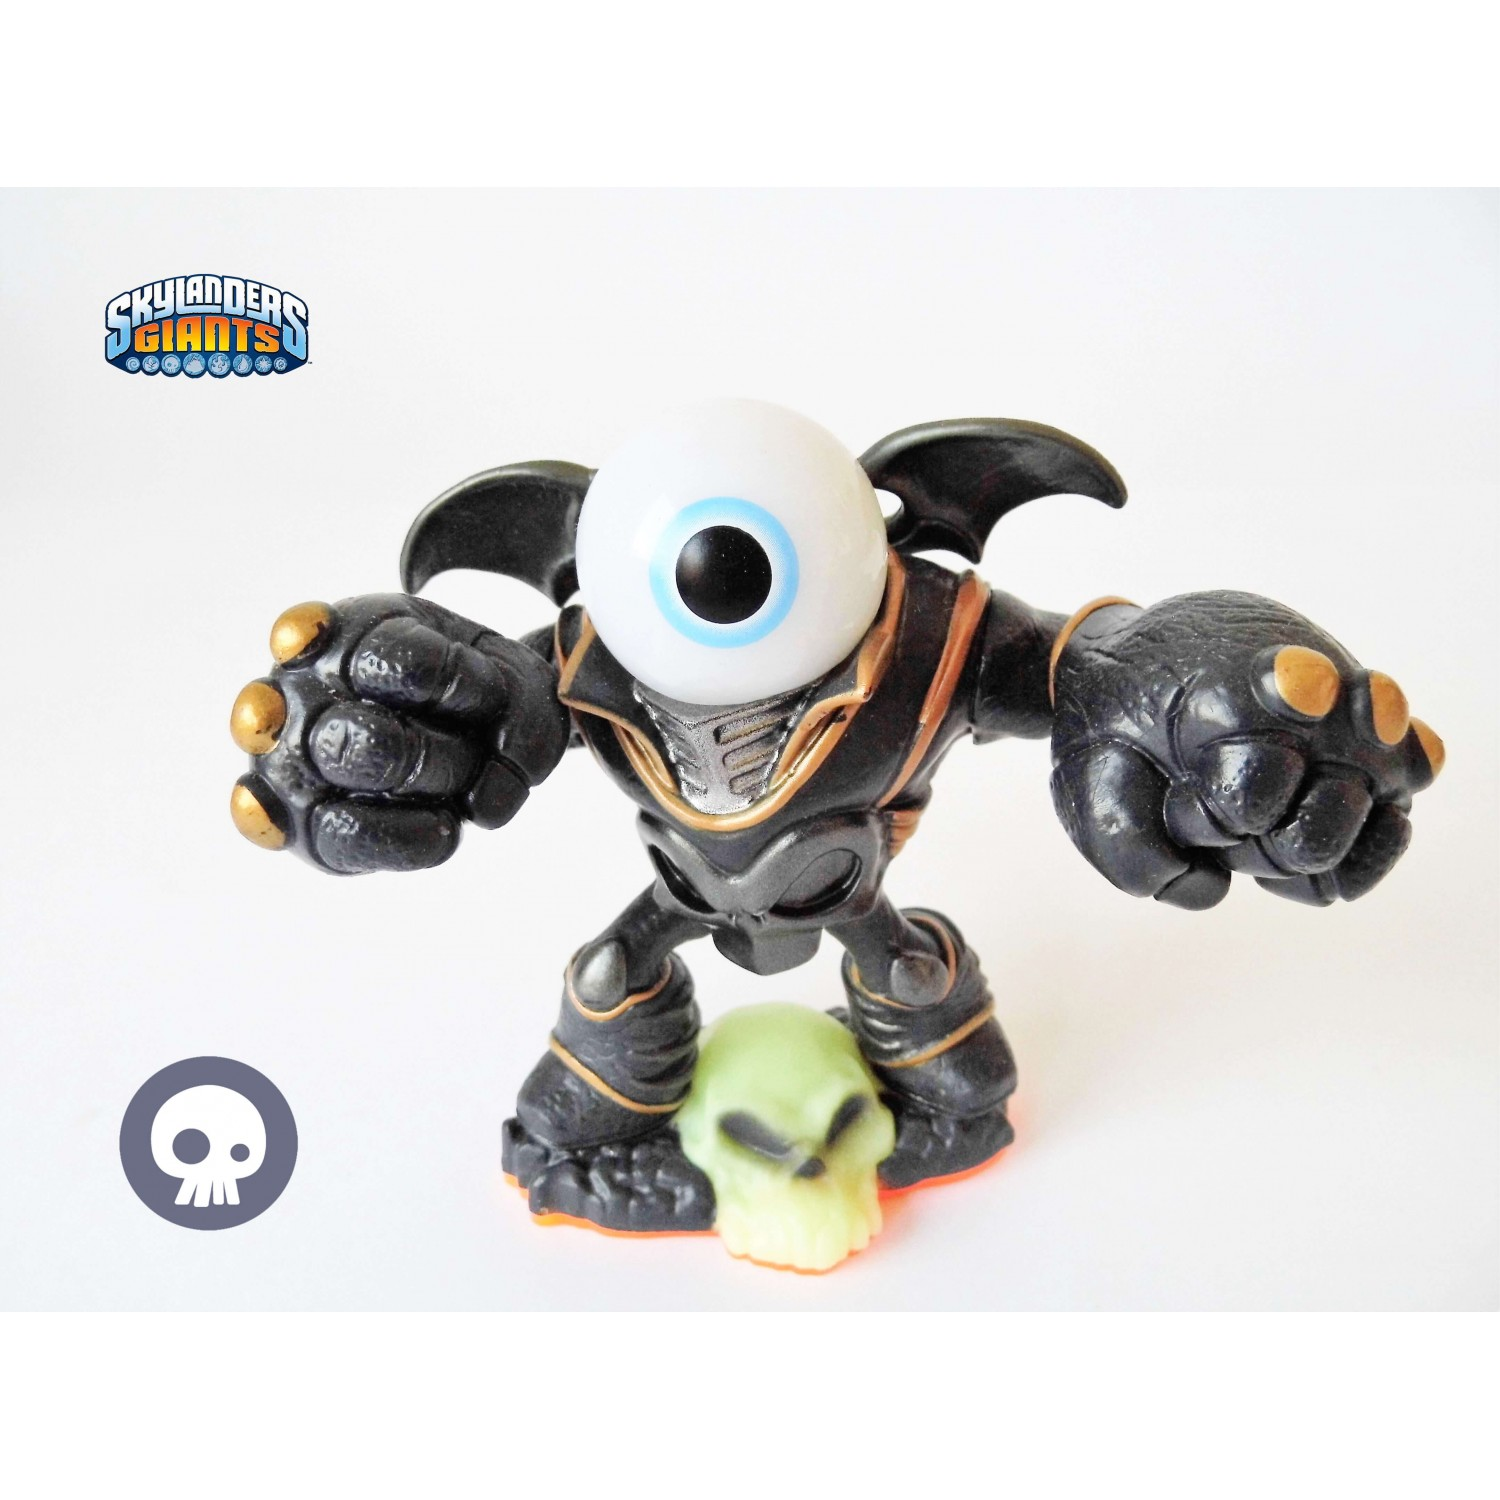 Skylanders Giants - Eye-Brawl játékfigura (Giant)